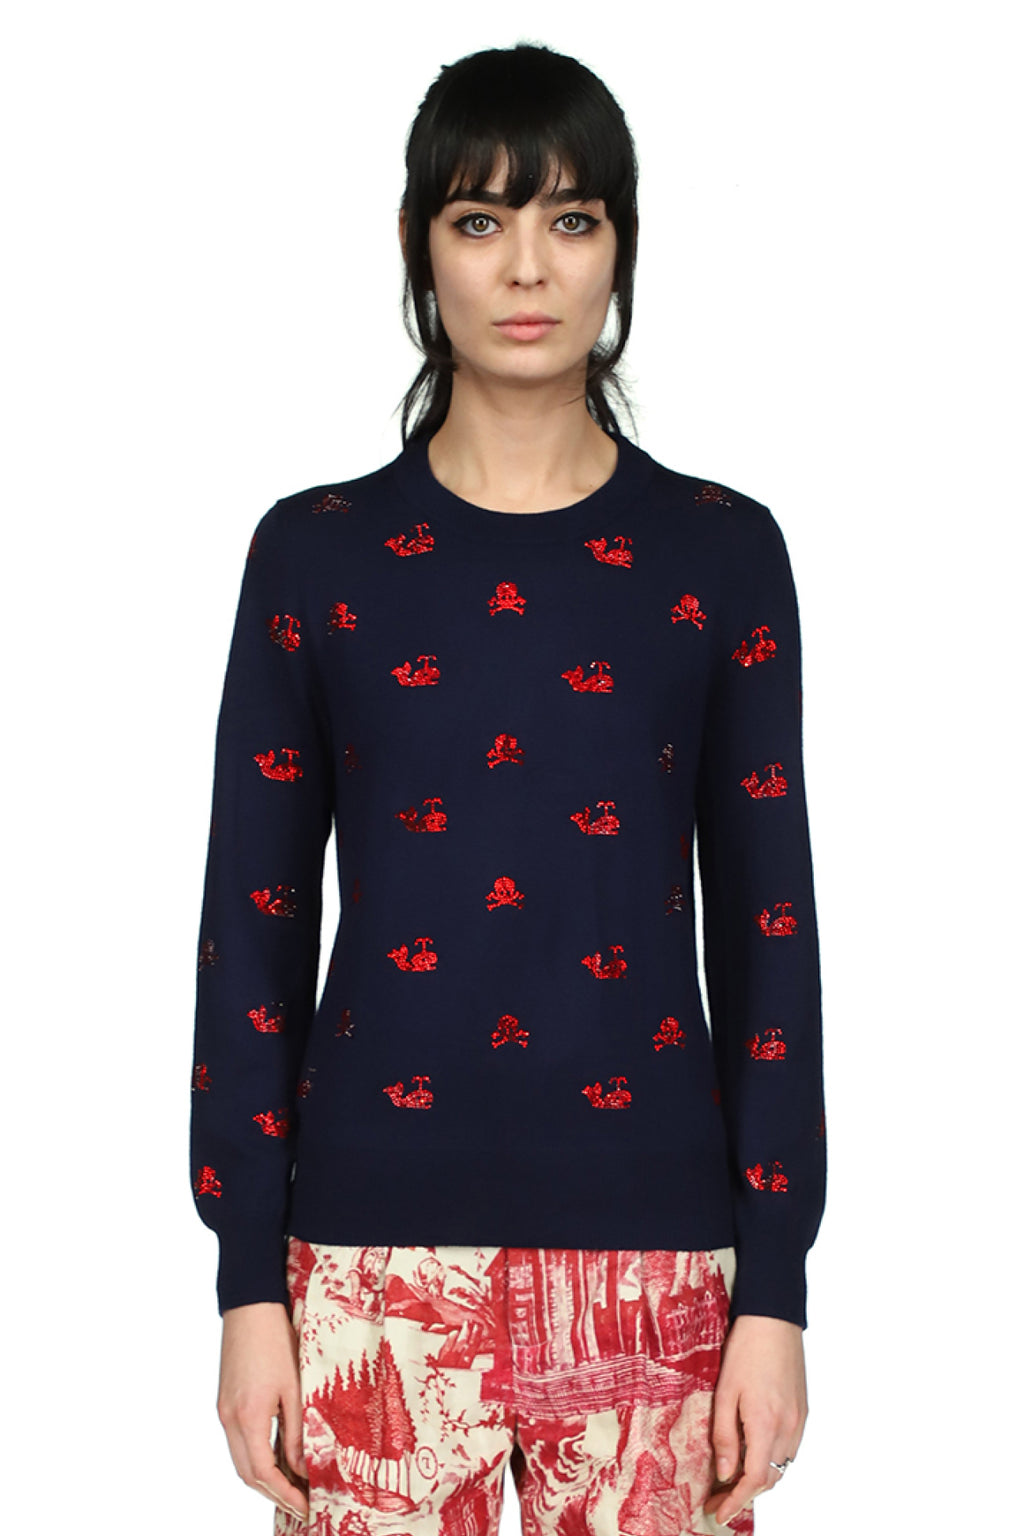 'Skull Crossbones and Whales' Navy Sweater - Spring 2021 - Libertine